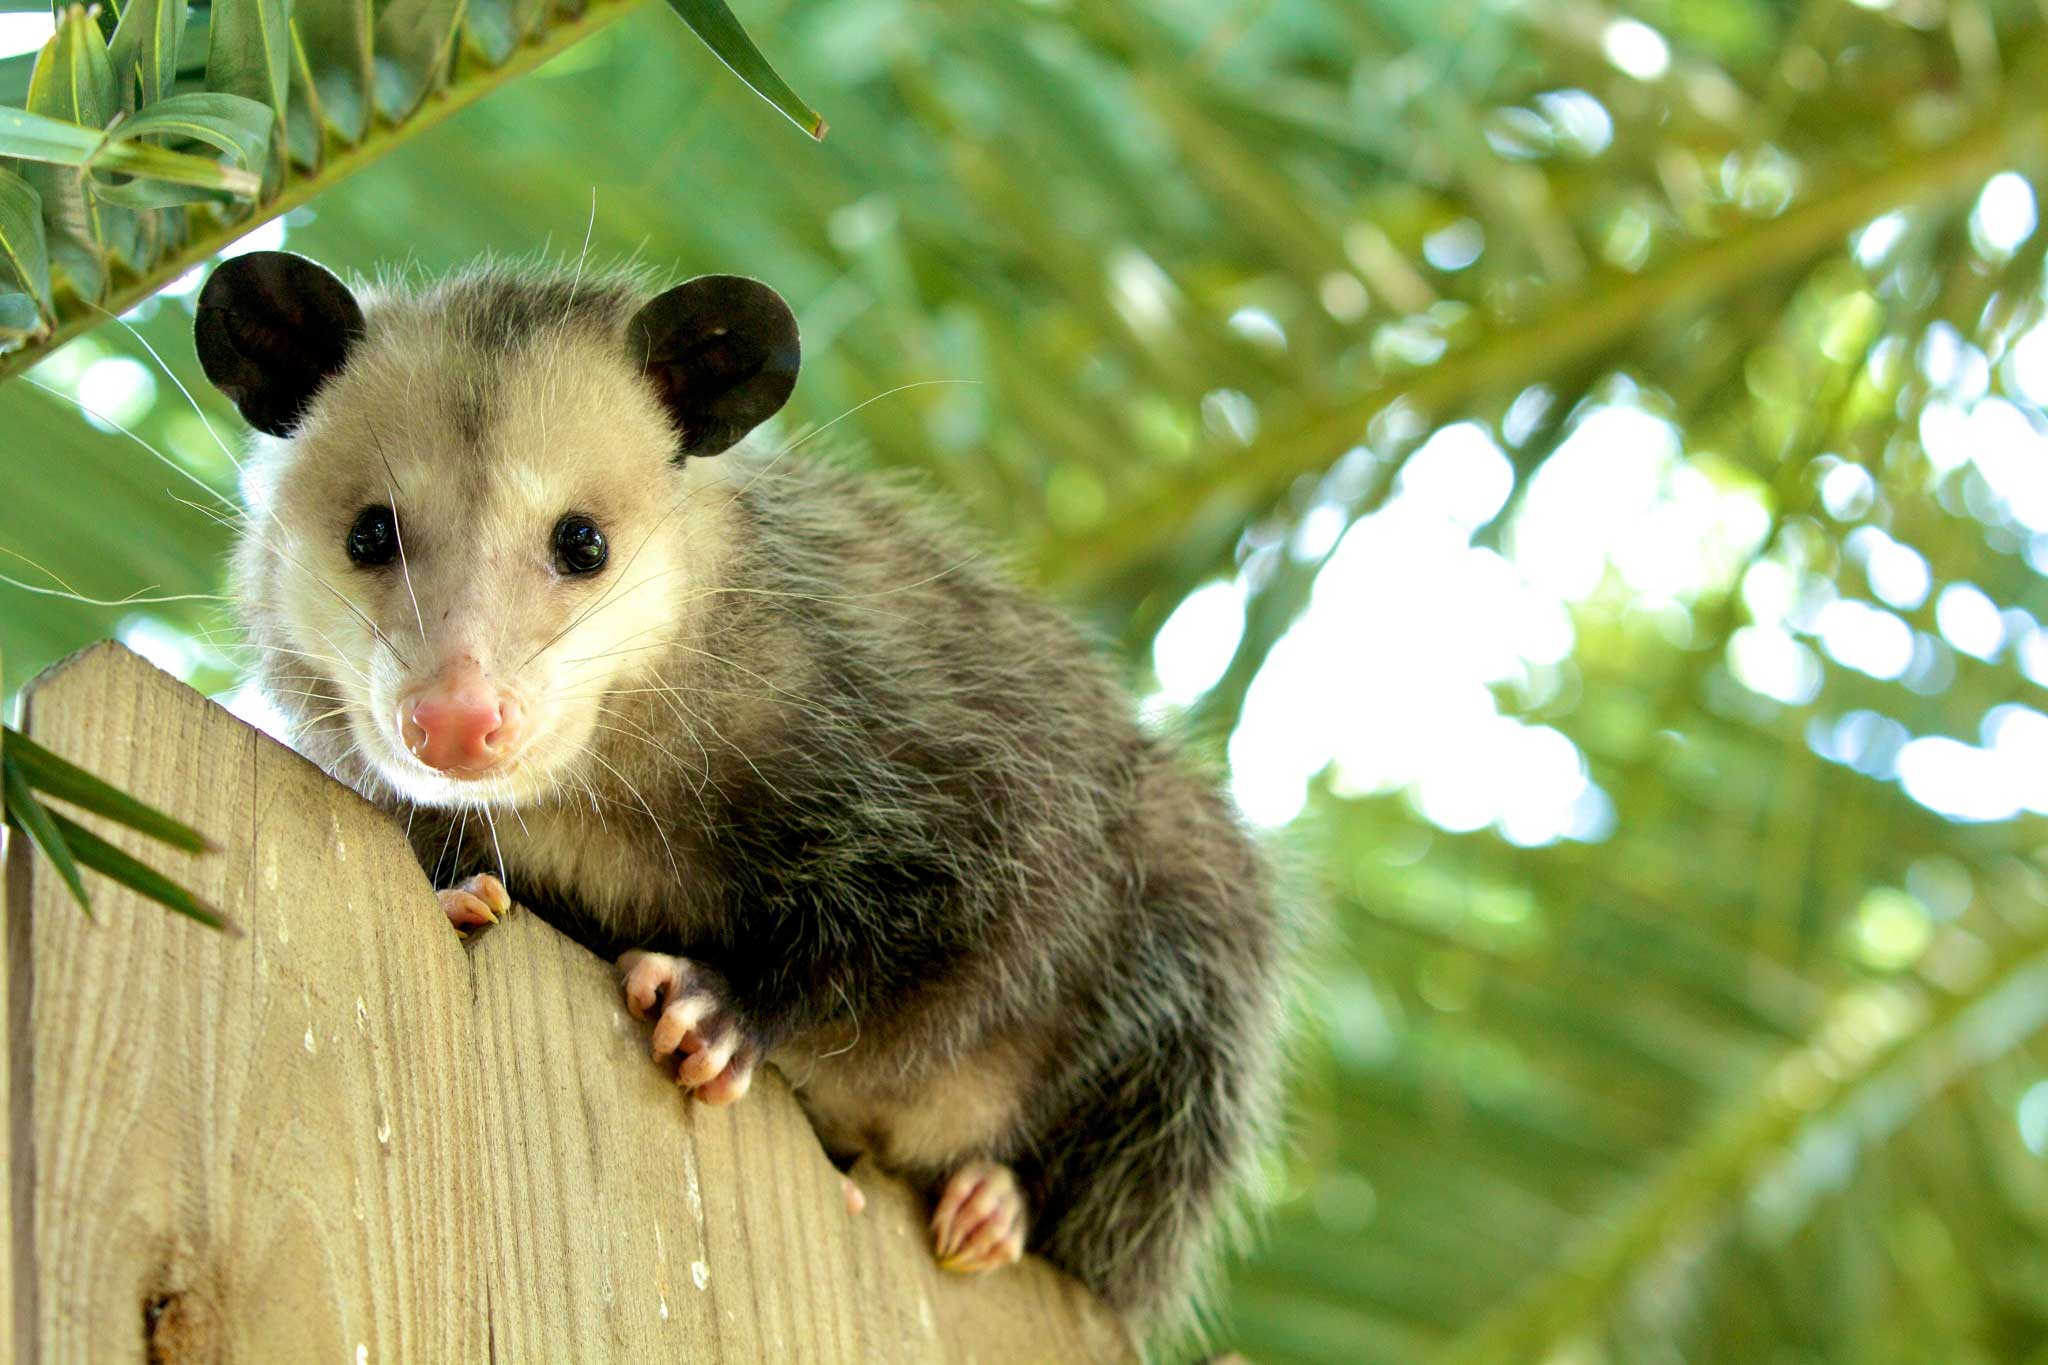 Virginia-opossum 70-million-years-ago Surprisingly Ancient Species vol.1